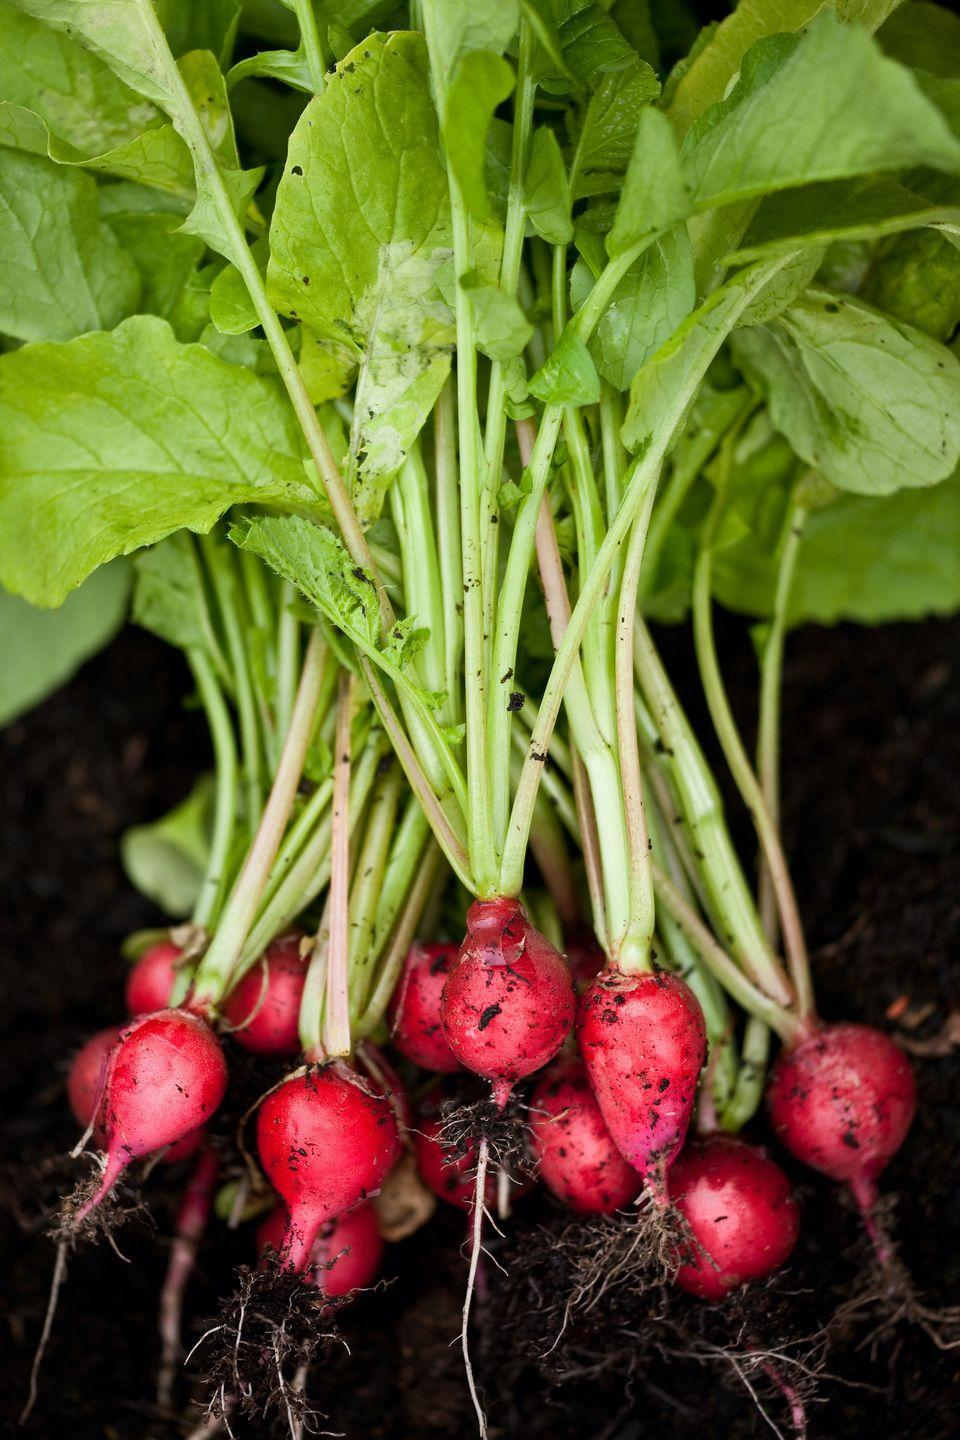 """<p>Radishes are quick and easy to grow from seed, especially if you're a beginner. Spending time in nature is a great way to boost your wellbeing, so why not slip on your gardening gloves and give radishes a try. </p><p><a class=""""link rapid-noclick-resp"""" href=""""https://www.waitrosegarden.com/plants/_/radish-mixed/classid.2000023116/"""" rel=""""nofollow noopener"""" target=""""_blank"""" data-ylk=""""slk:BUY NOW VIA WAITROSE GARDEN"""">BUY NOW VIA WAITROSE GARDEN</a></p>"""